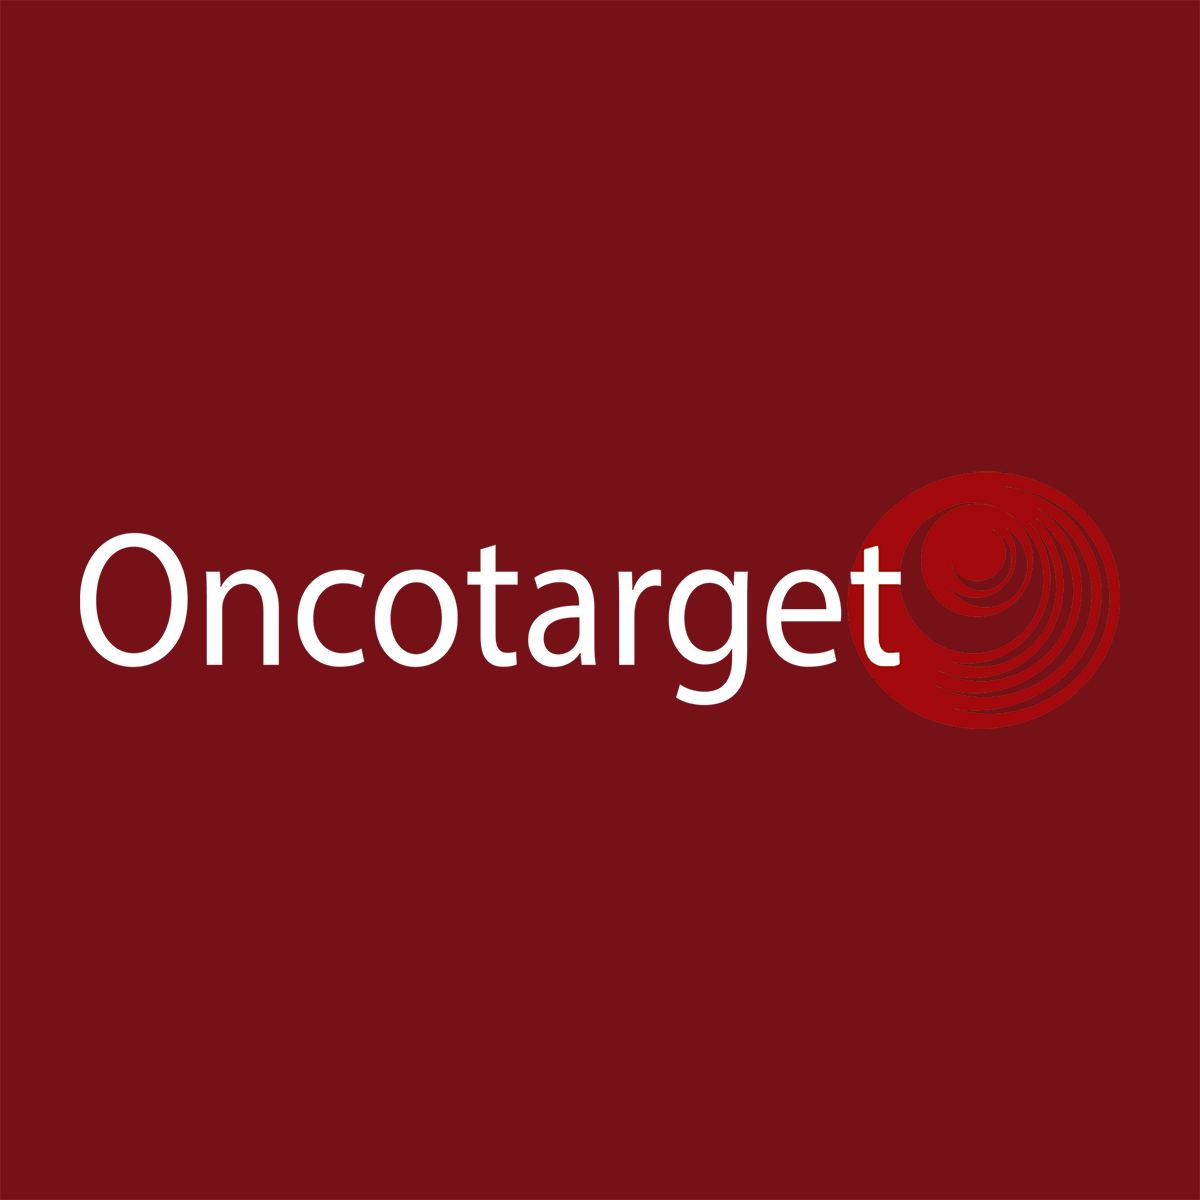 Oncotarget | Maximizing research impact via insightful peer